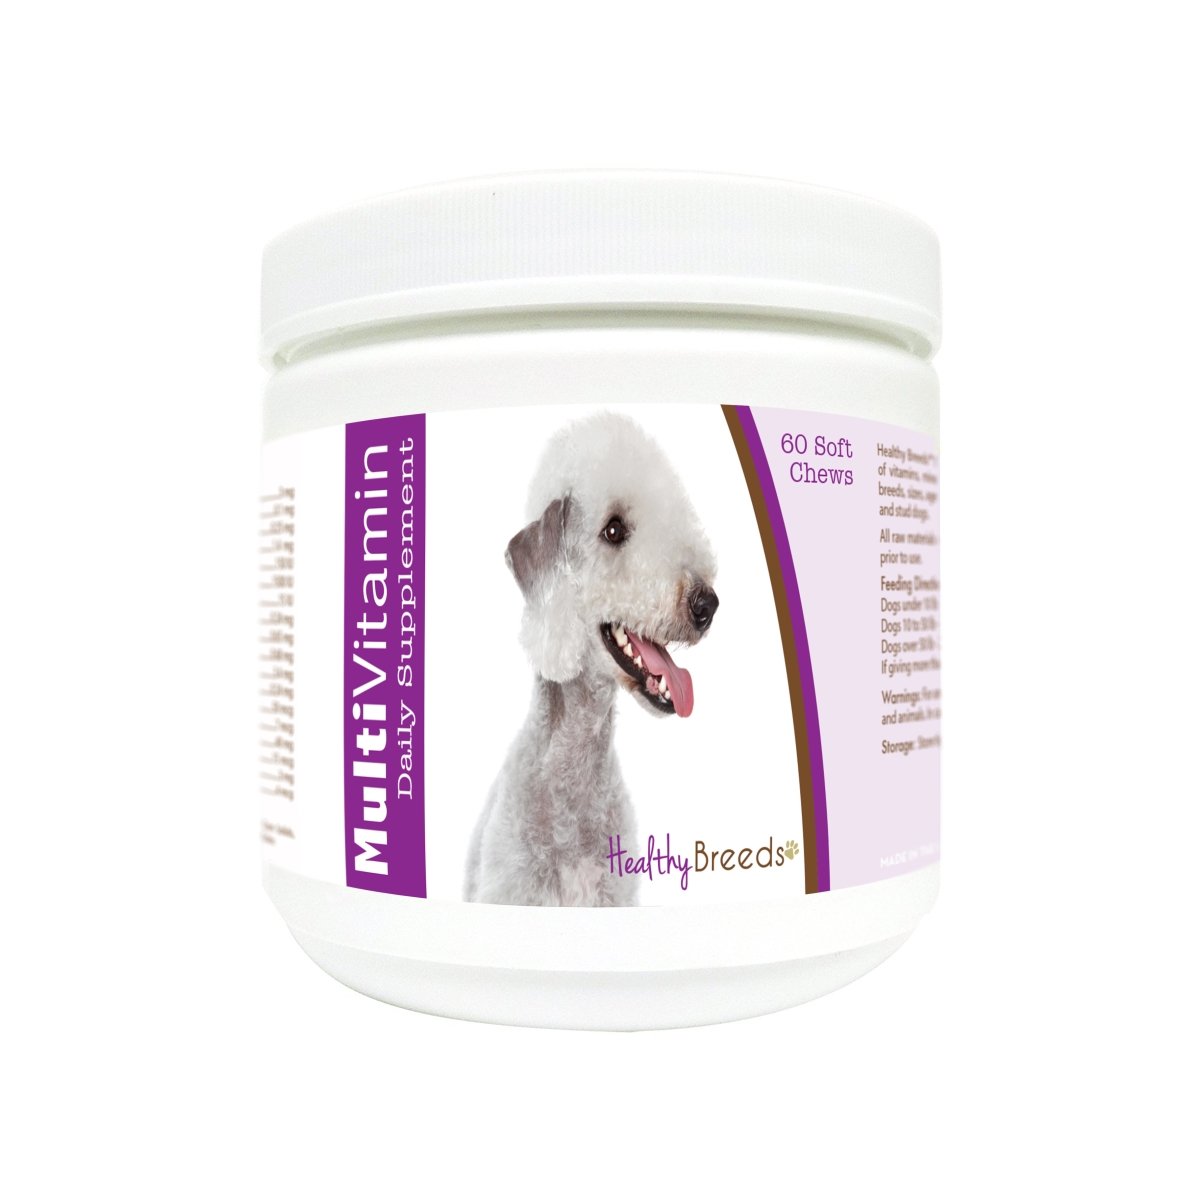 Healthy Breeds 840235171188 Bedlington Terrier Multi-Vitamin Soft Chews - 60 Count